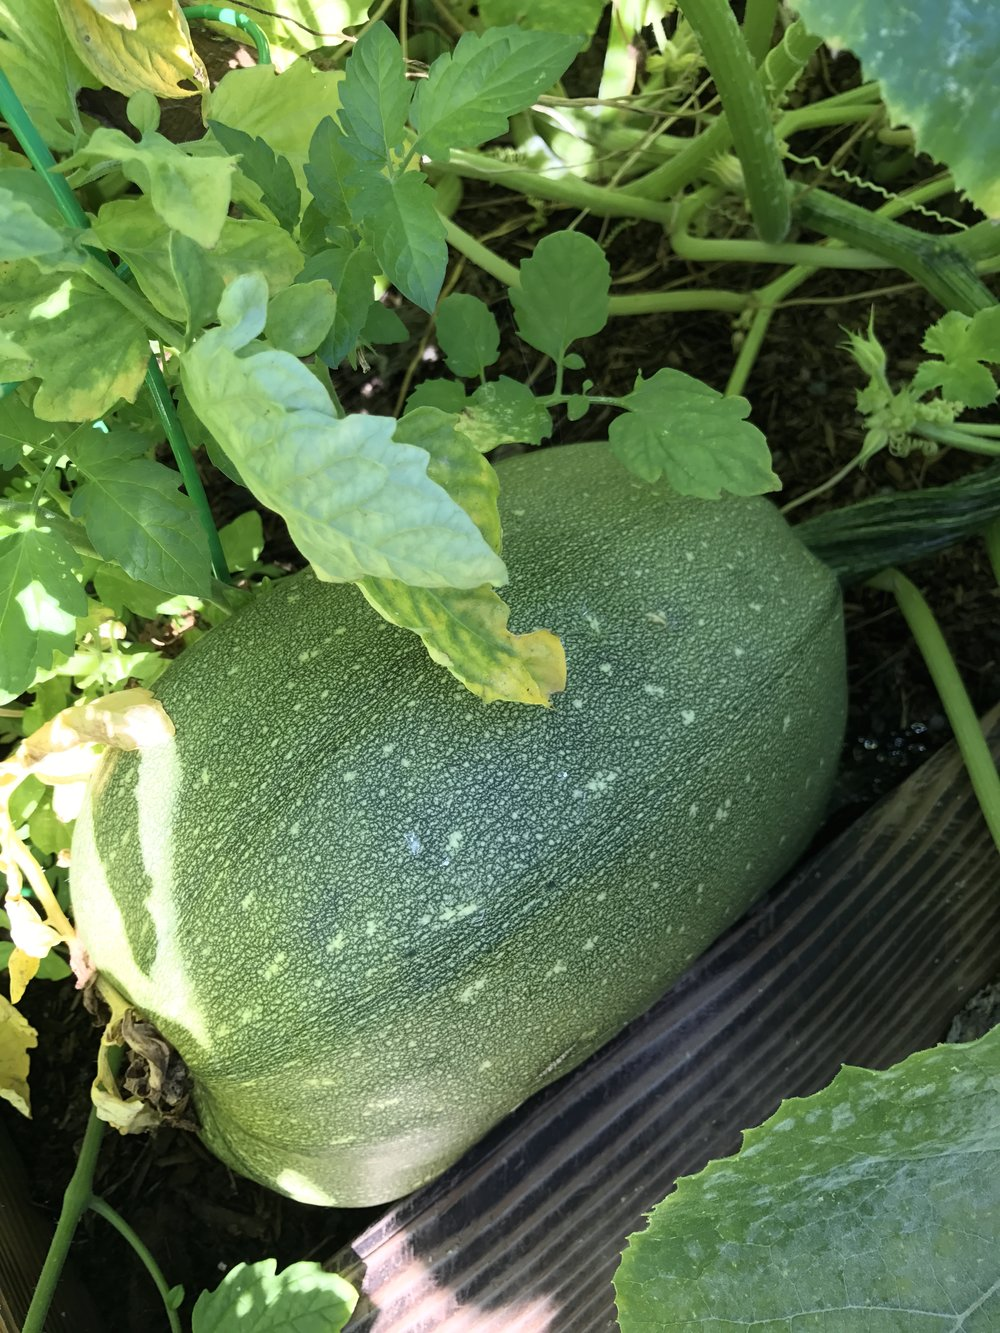 So this should be Butternut Squash... but clearly it is not.... We think it's a new mix, half Butternut Squash and half Zucchini. Our Zucchini was planted in the next box over.